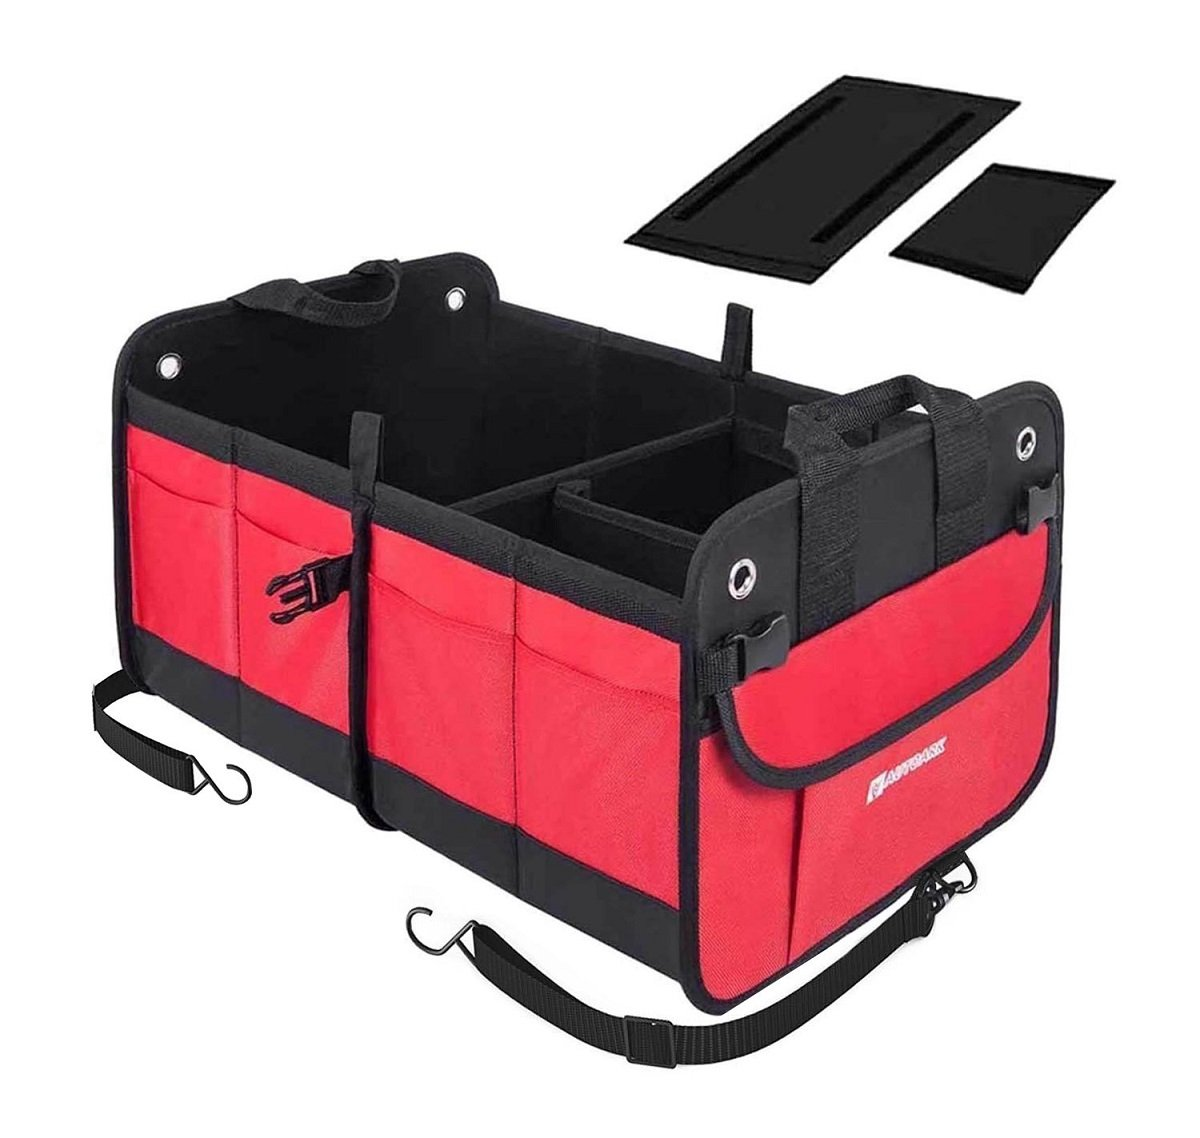 Autoark Multipurpose Car SUV Trunk Organizer with Straps, Durable Collapsible Cargo Storage, Waterproof Bottom With Strips & Rubber Foot Based to Prevent Sliding (New Version), AK-042 FBA_AK-042